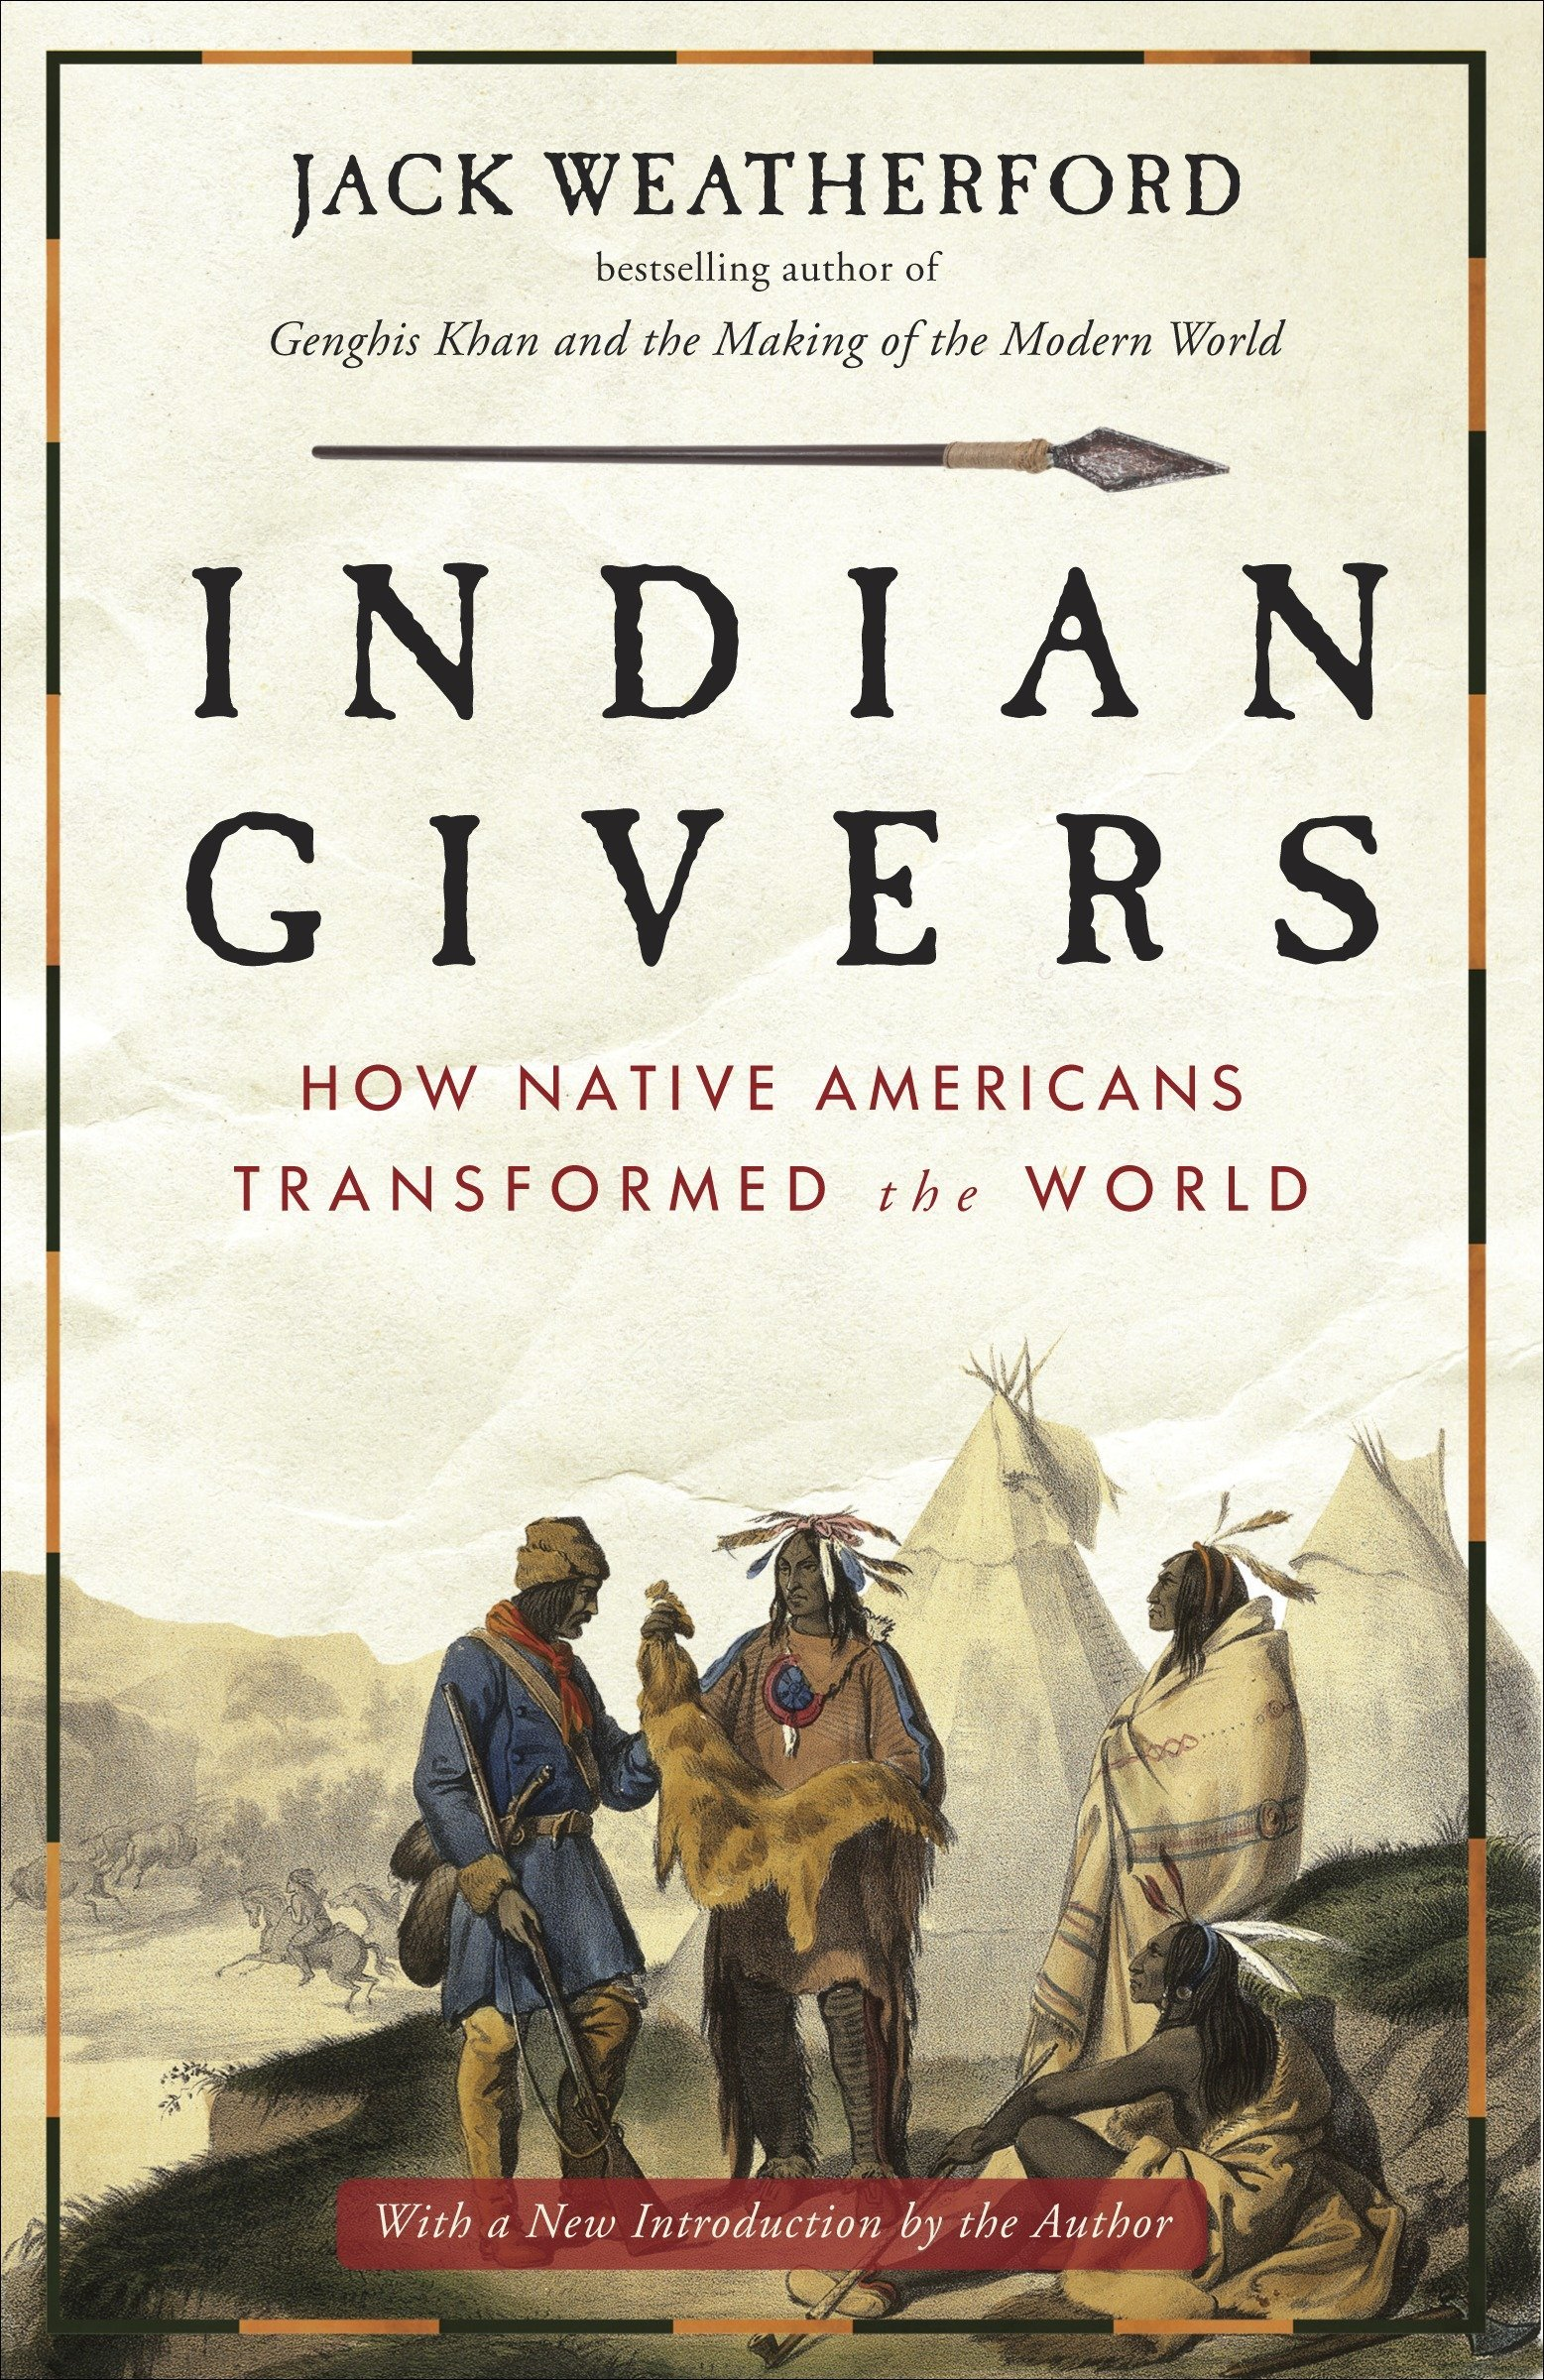 Amazon fr - Indian Givers: How Native Americans Transformed